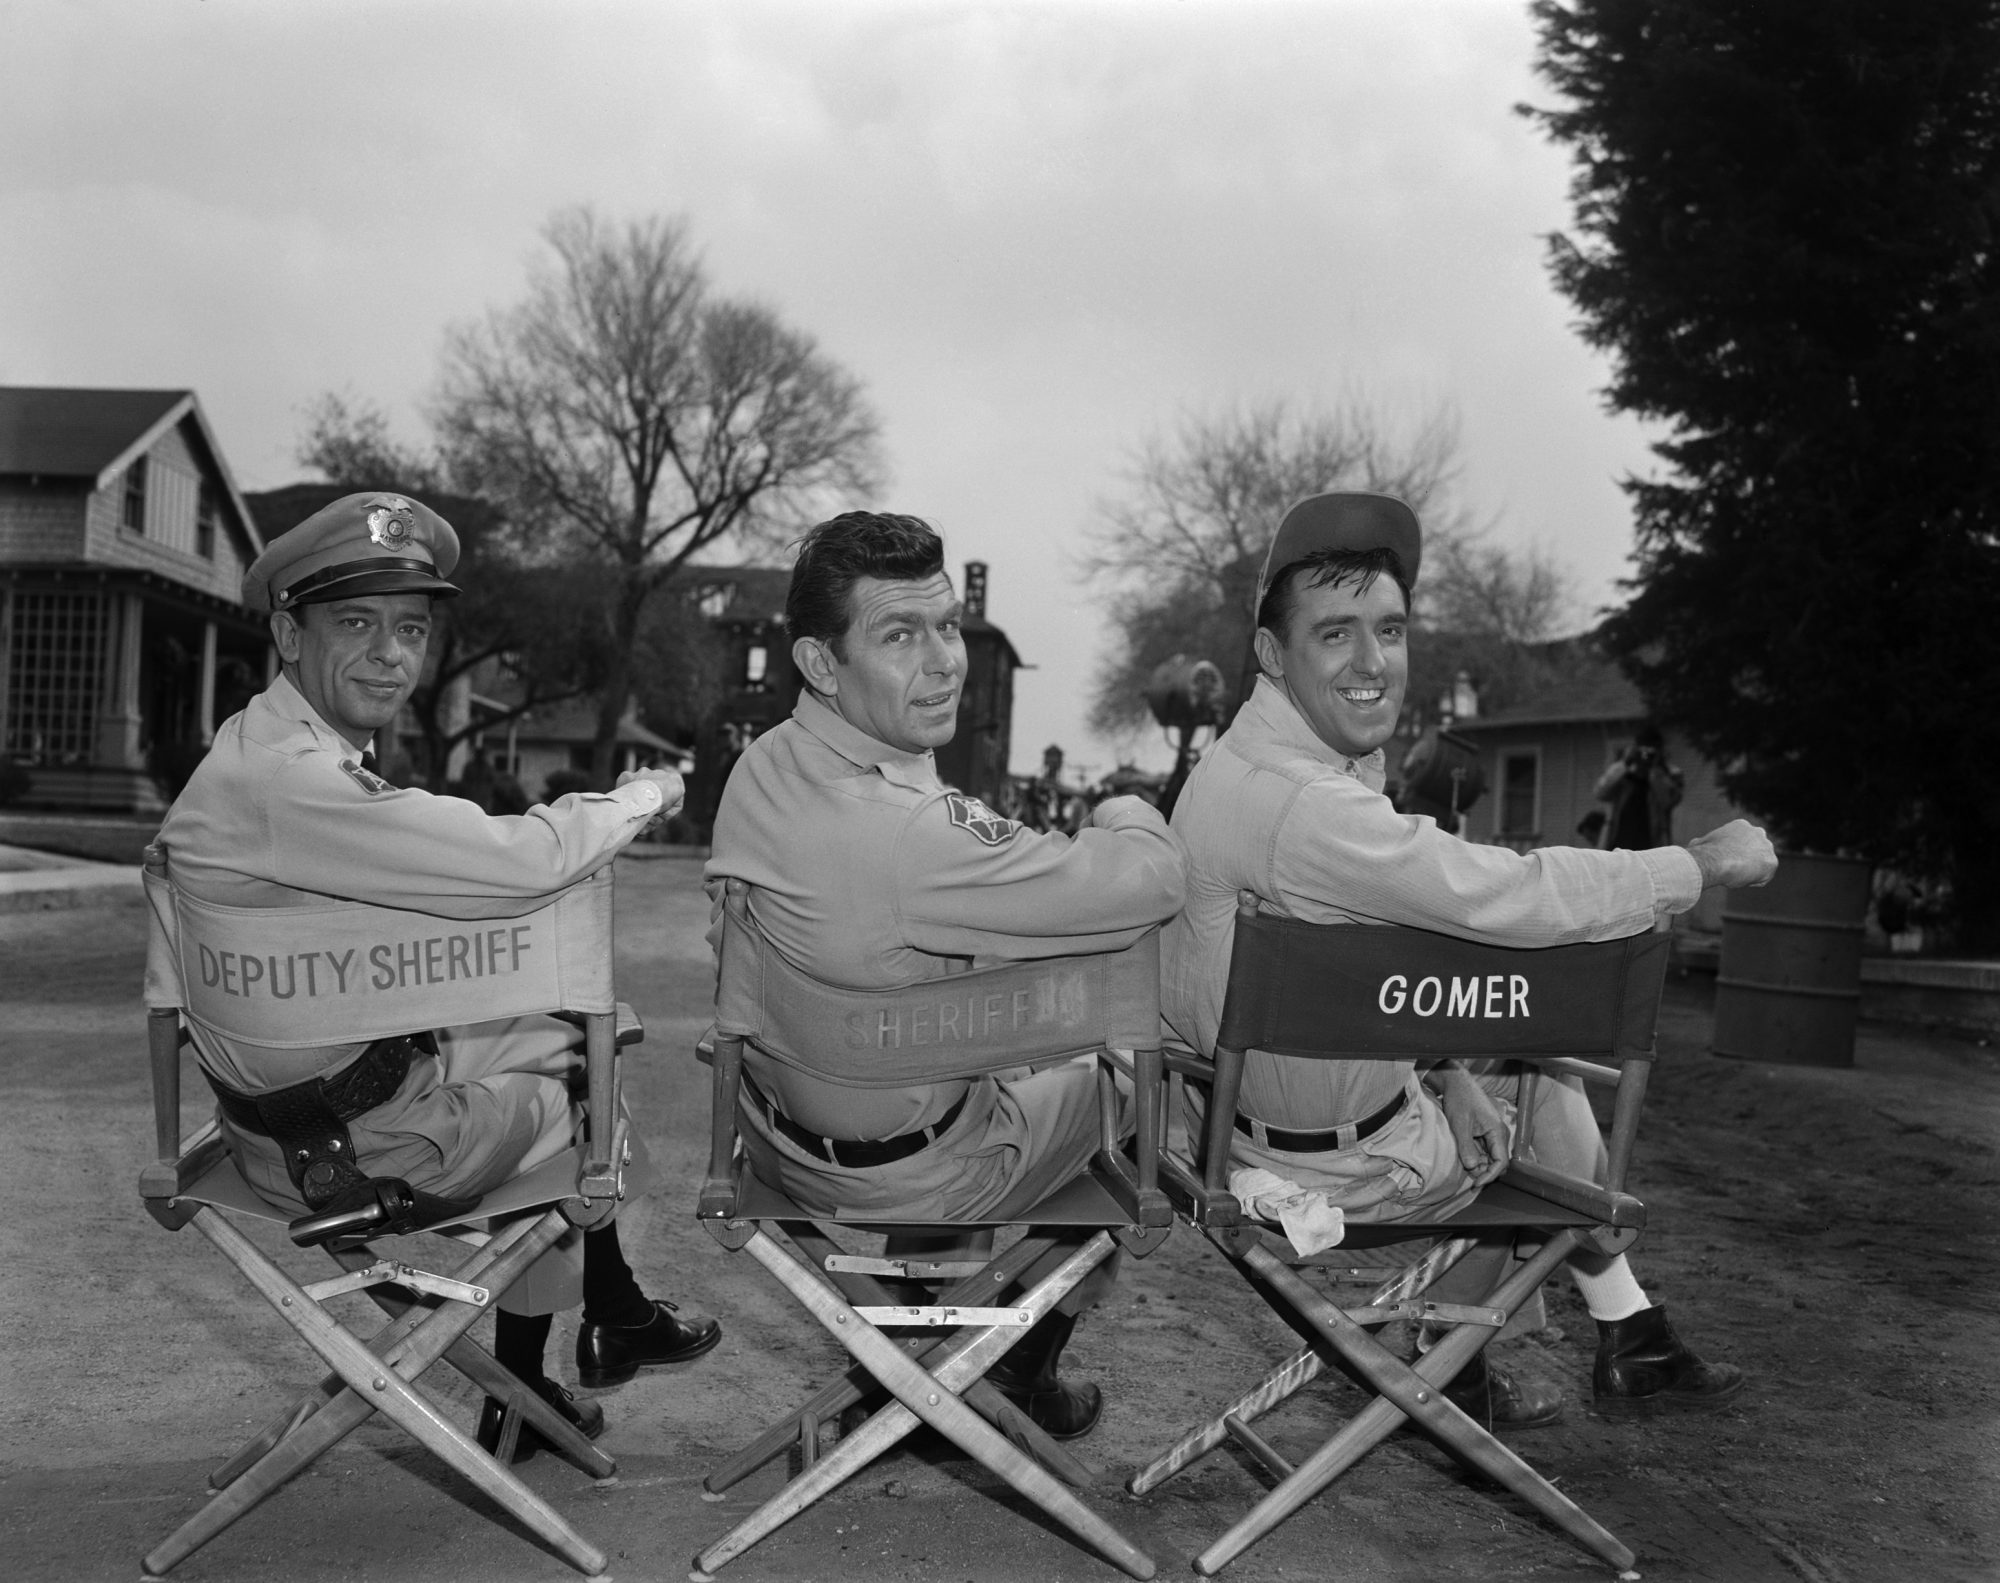 On the set of the Andy Griffith Show during season 4